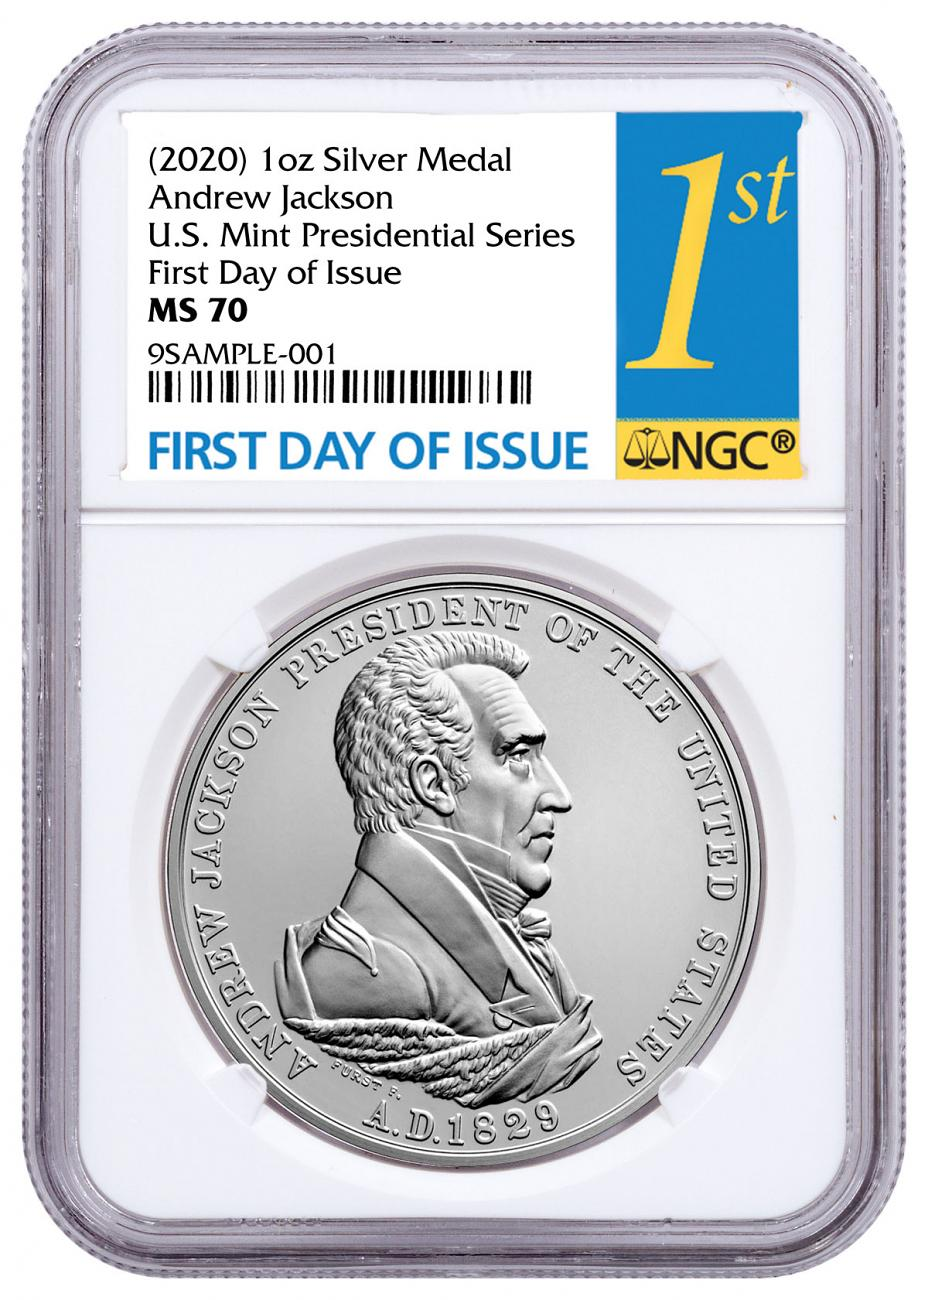 (2020) United States Presidential Medal Andrew Jackson 1 oz Silver Matte Medal NGC MS70 FDI